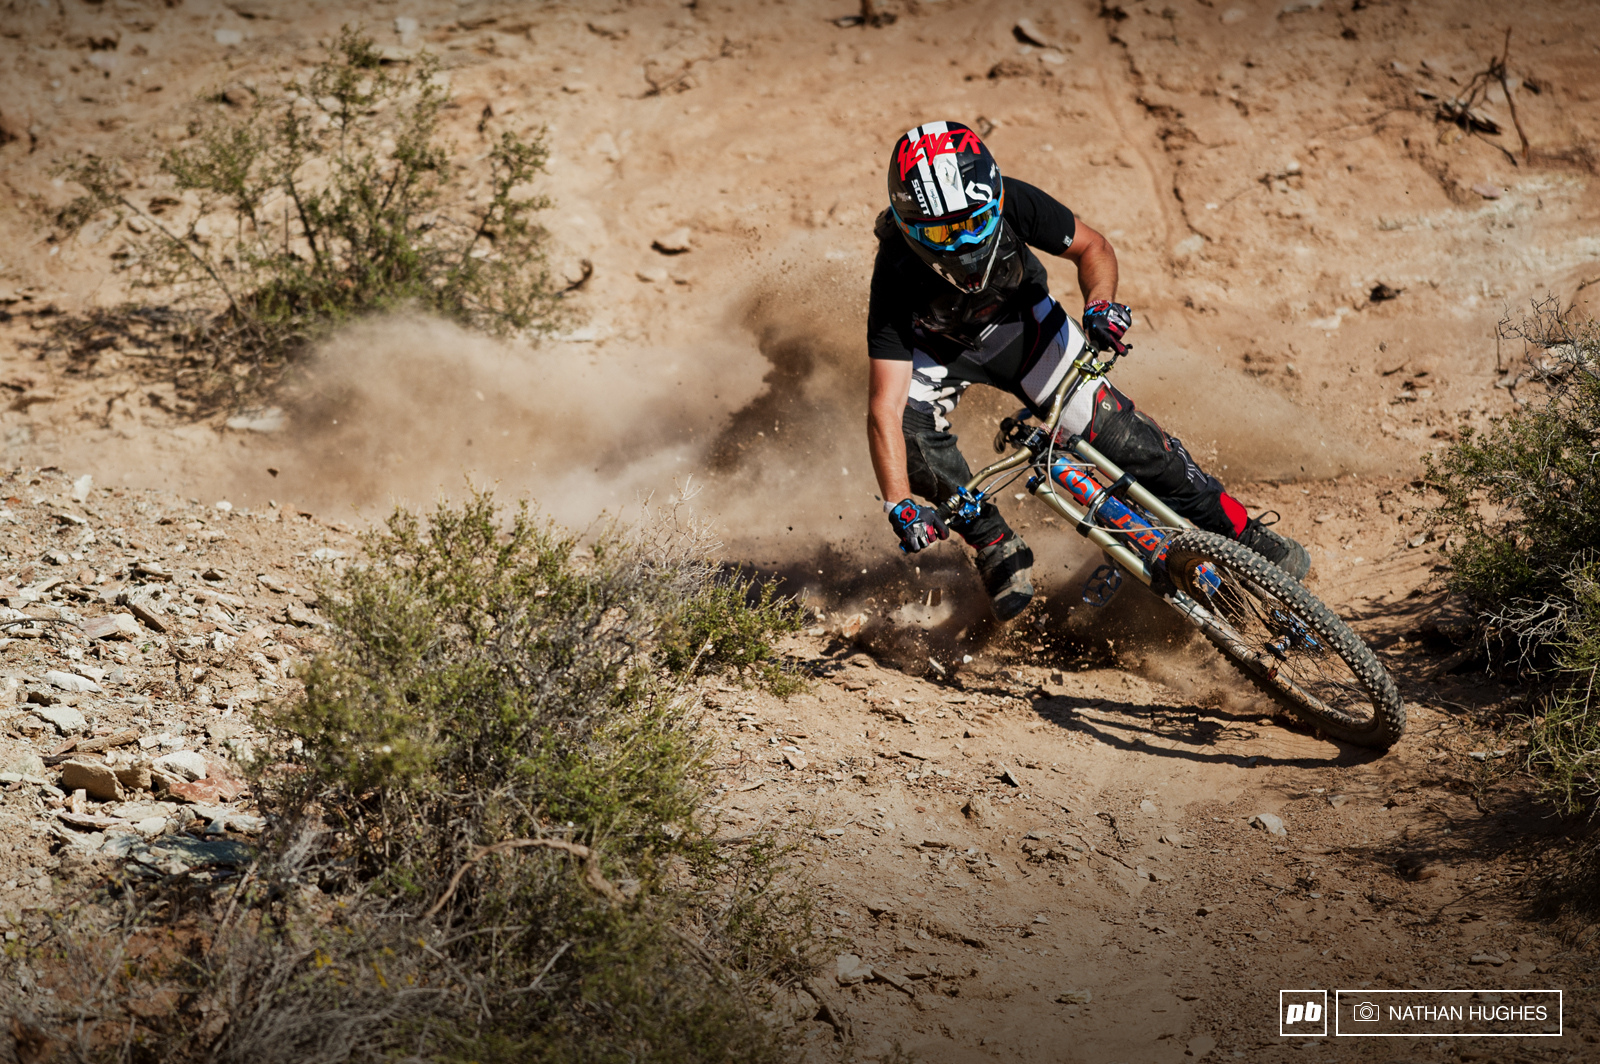 Nico Vink kicking up a fuss. He s hung up his downhill boots for a bit but had been plenty busy digging big things and shooting edits. No surprise he s at Rampage for a second time riding and crafting away with Lacondeguy.